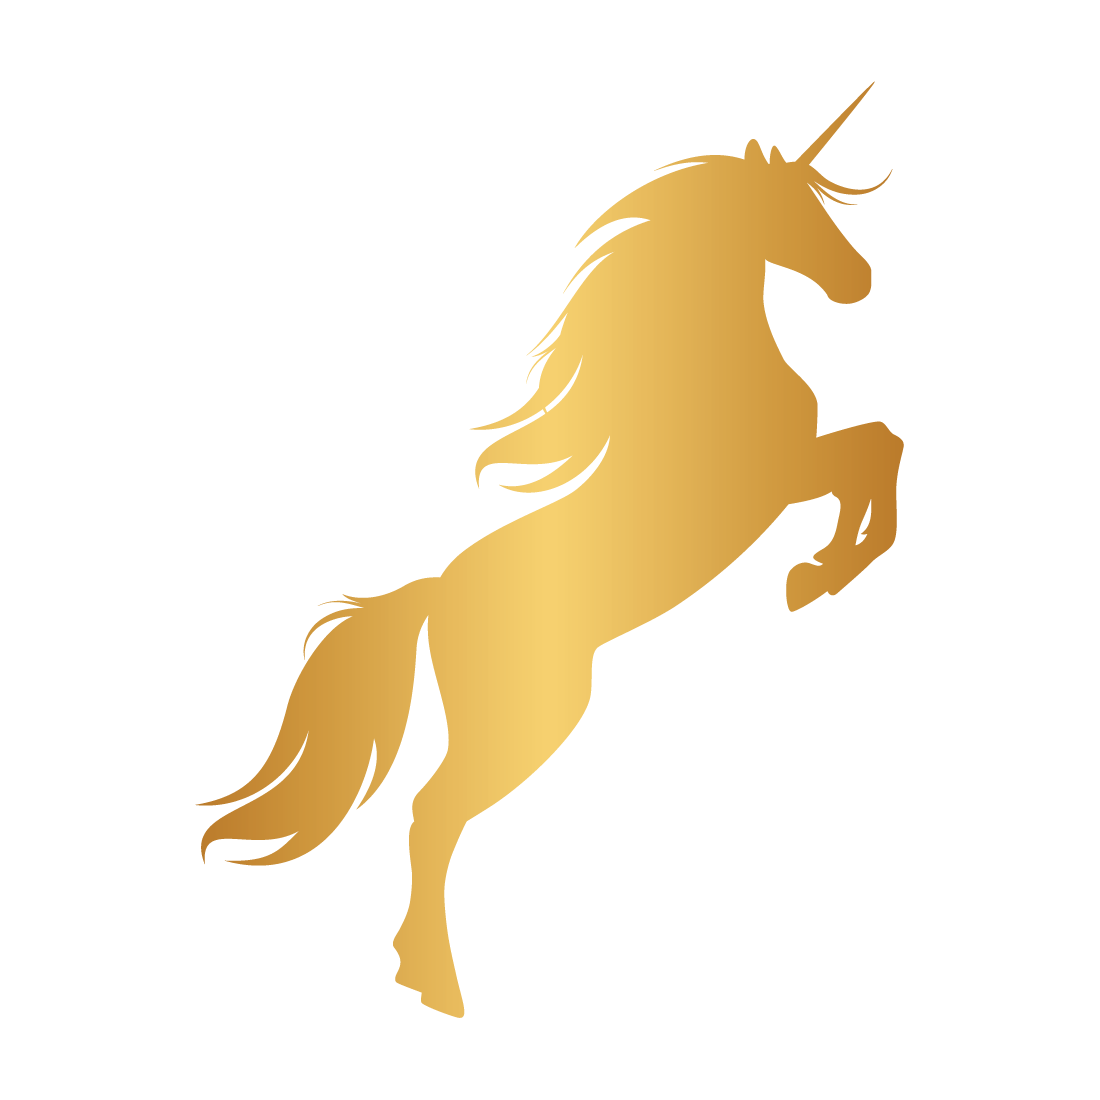 Unicorn Horn Mustang Gold Portable Network Graphics.